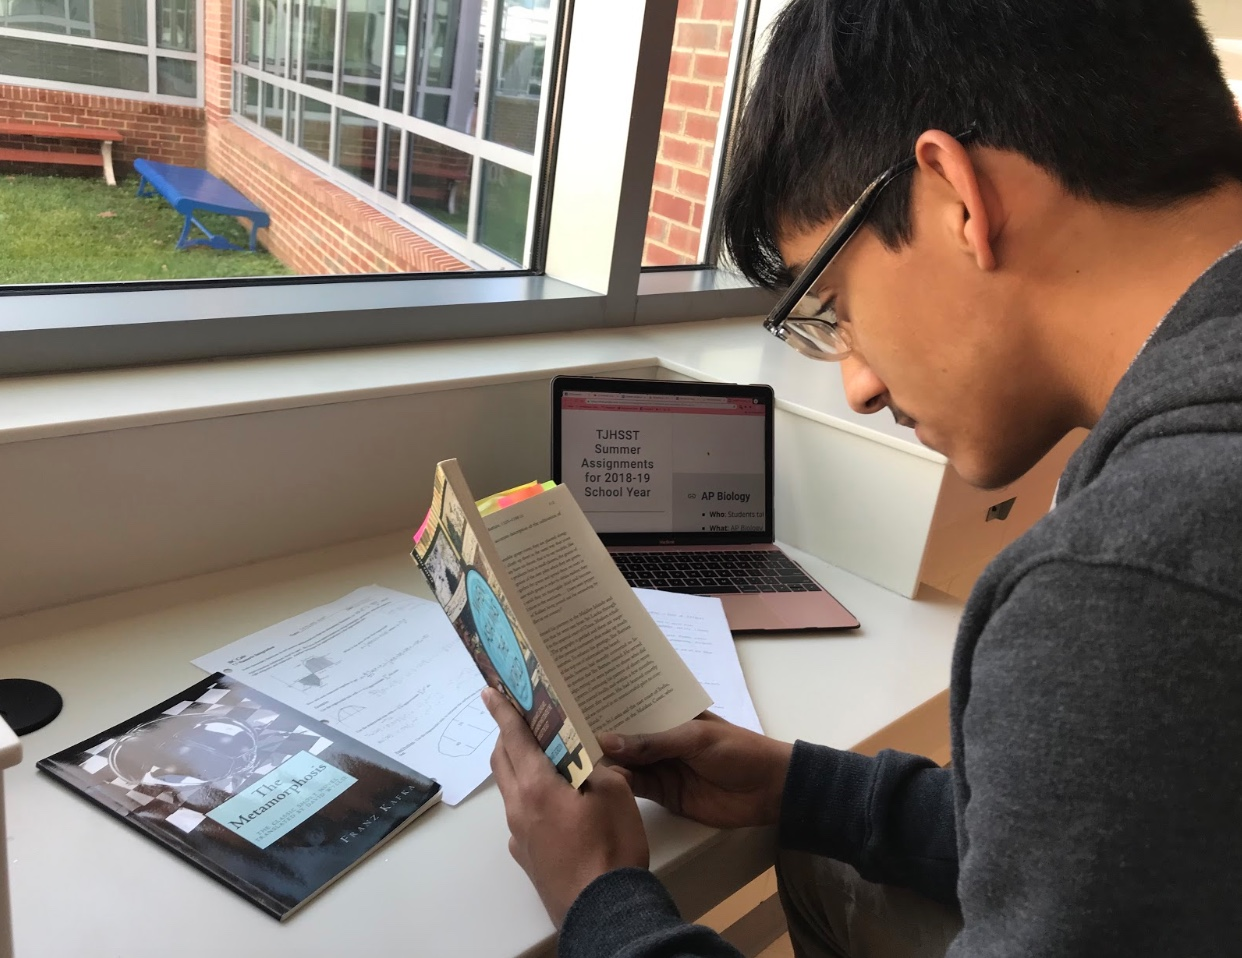 Sophomore Ikhlaas Bhat reads When Asia was the World, a book that was given to read as a summer assignment before the year began.